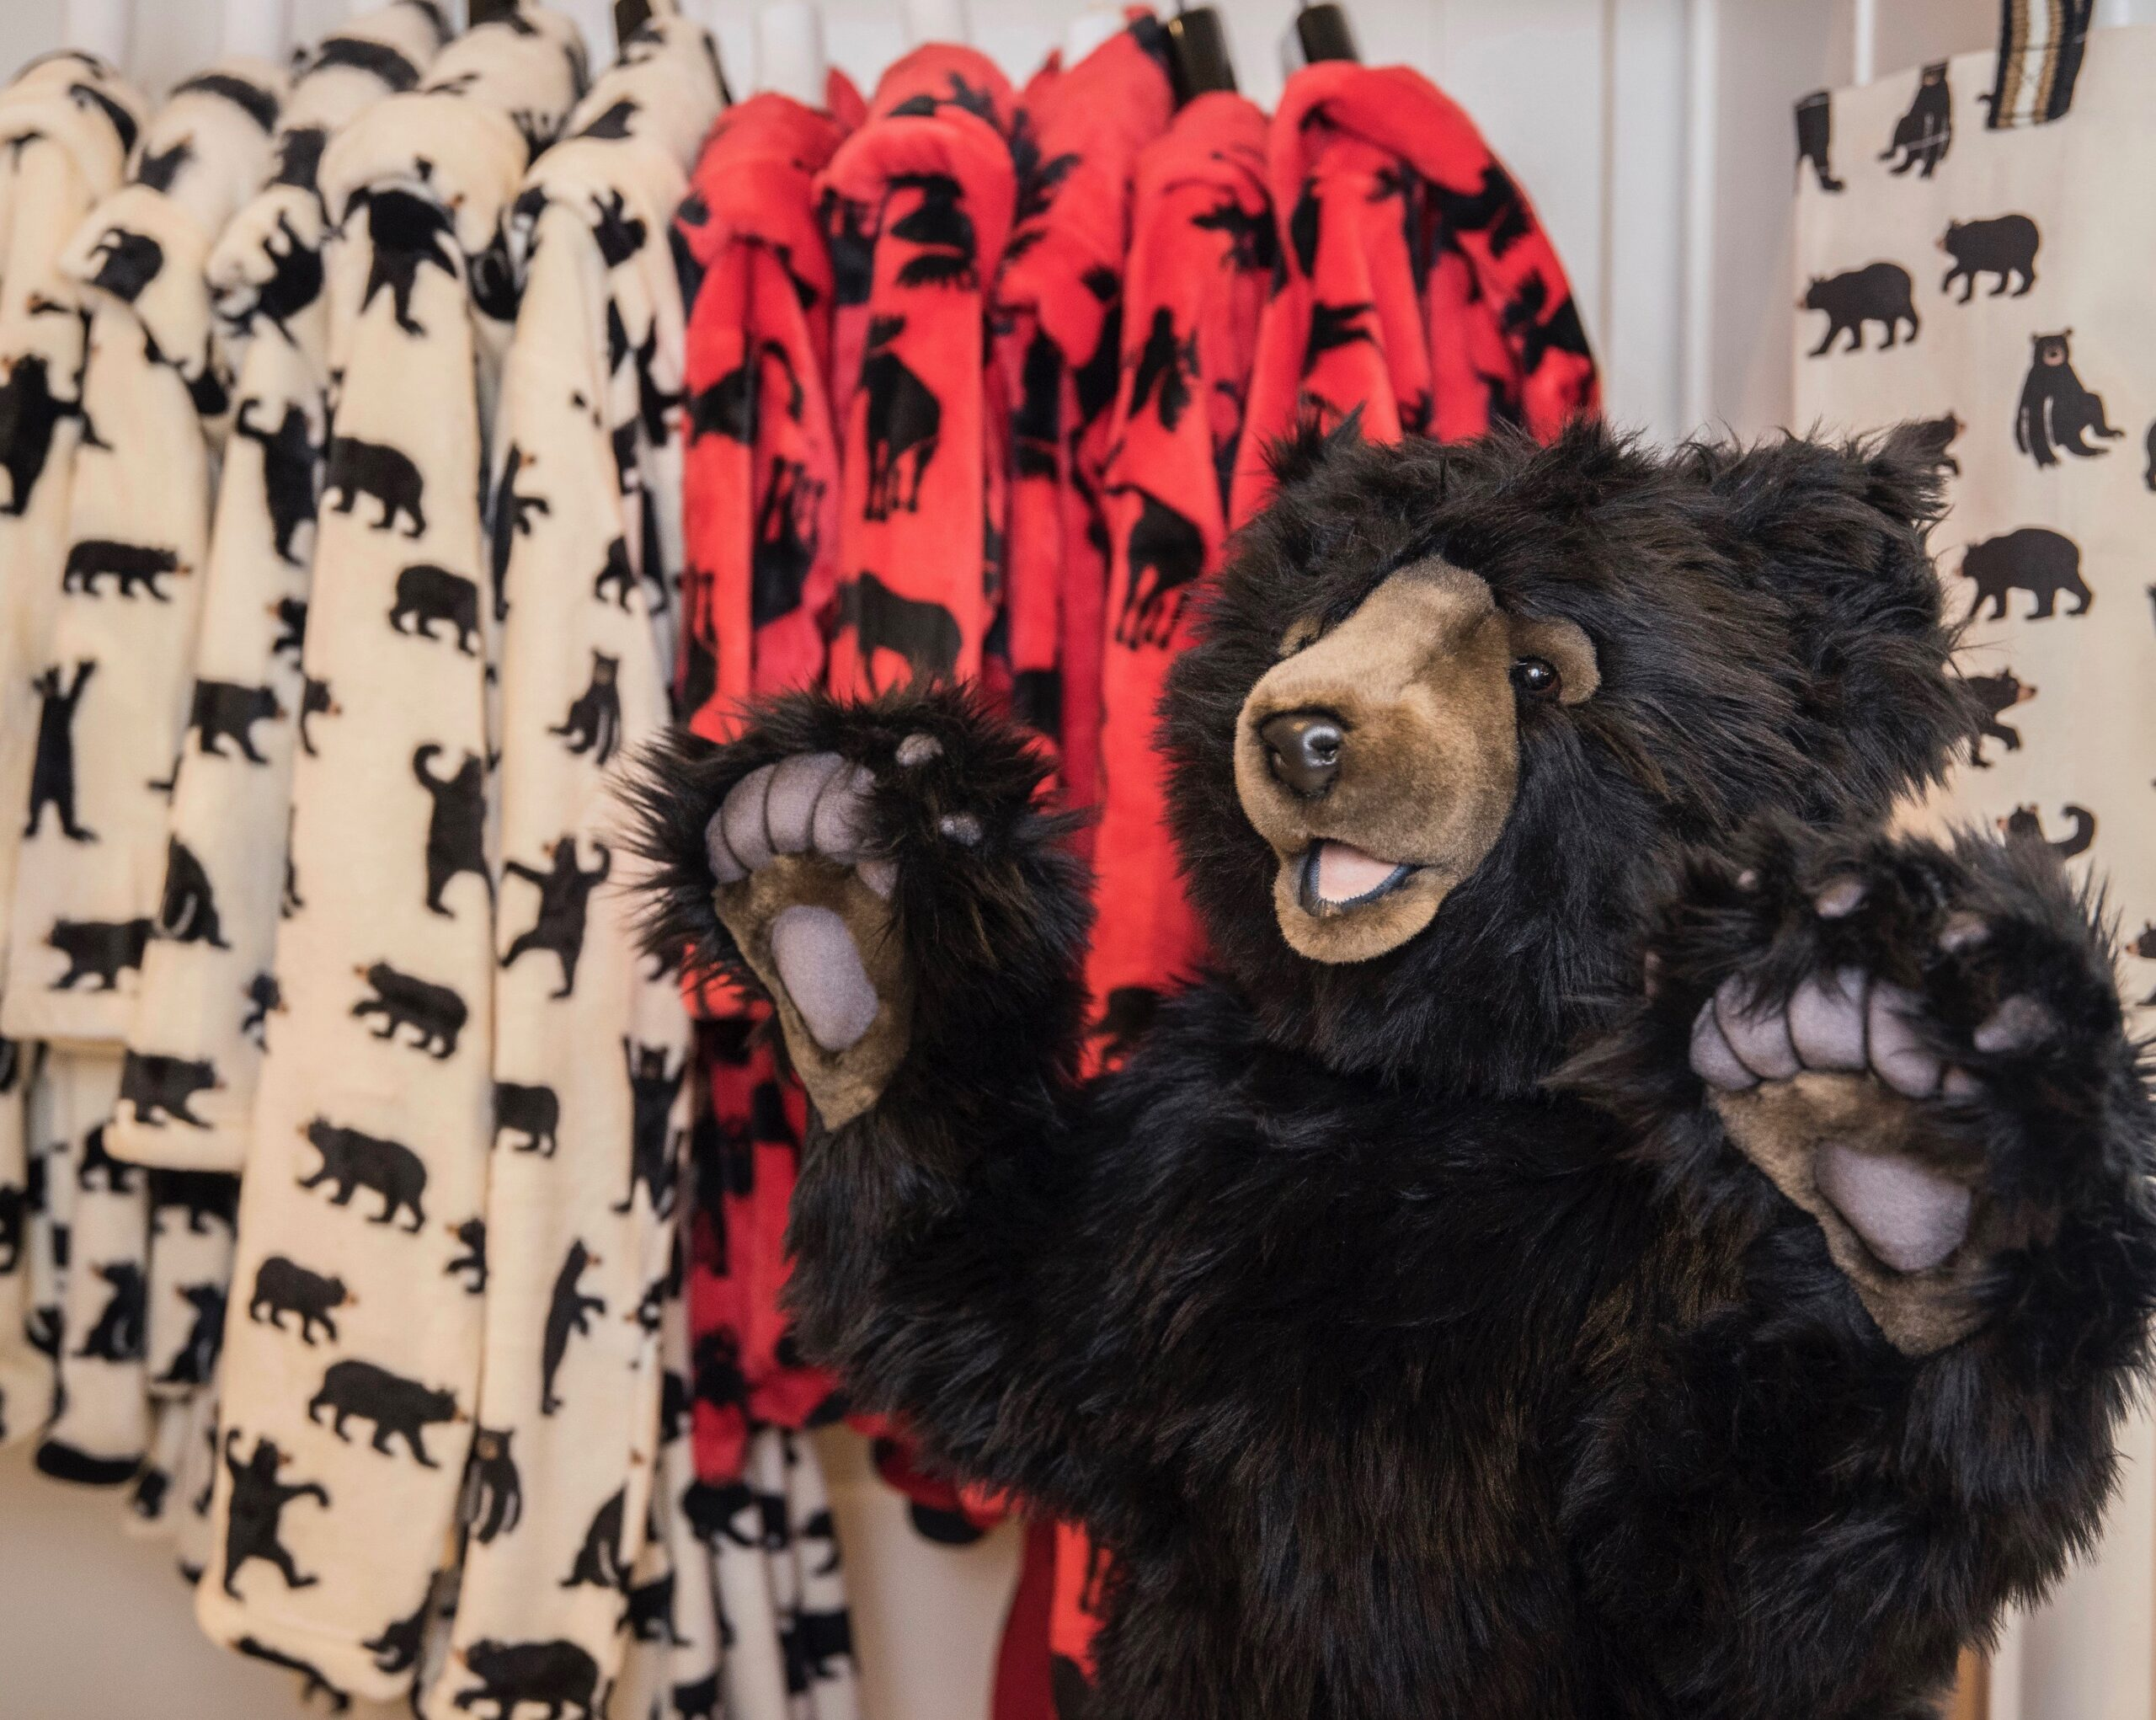 Kids flannel pajamas display with stuffed bear